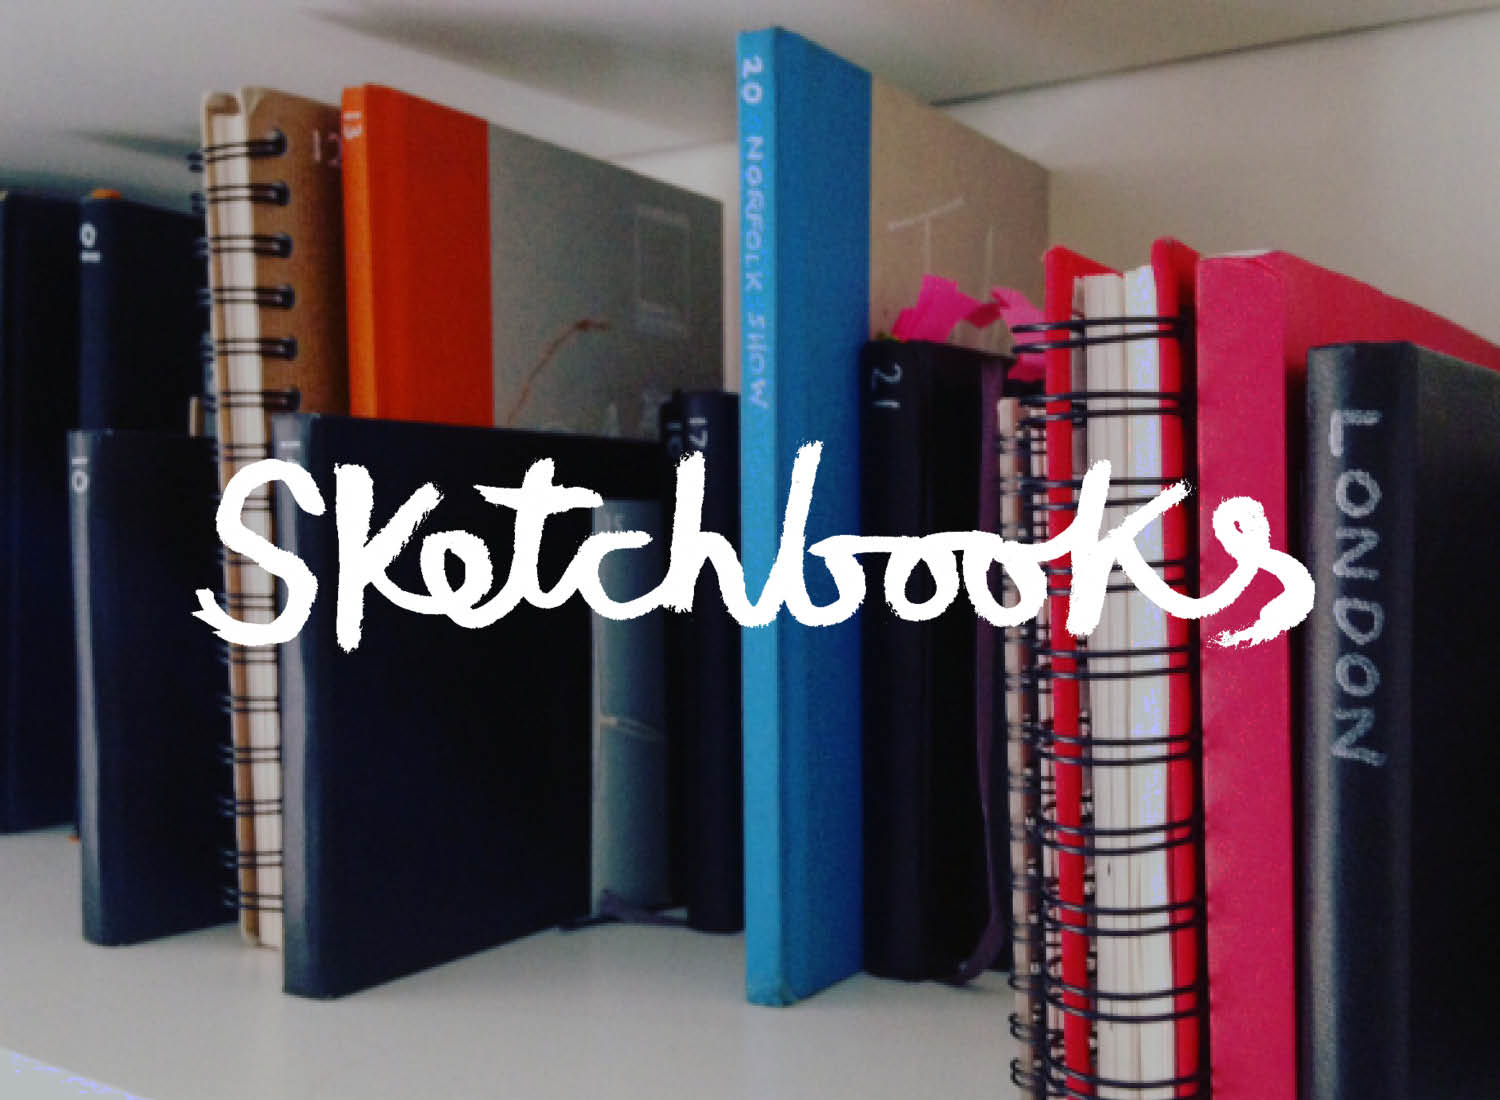 1 Sketchbooks by Owen Mathers.jpg